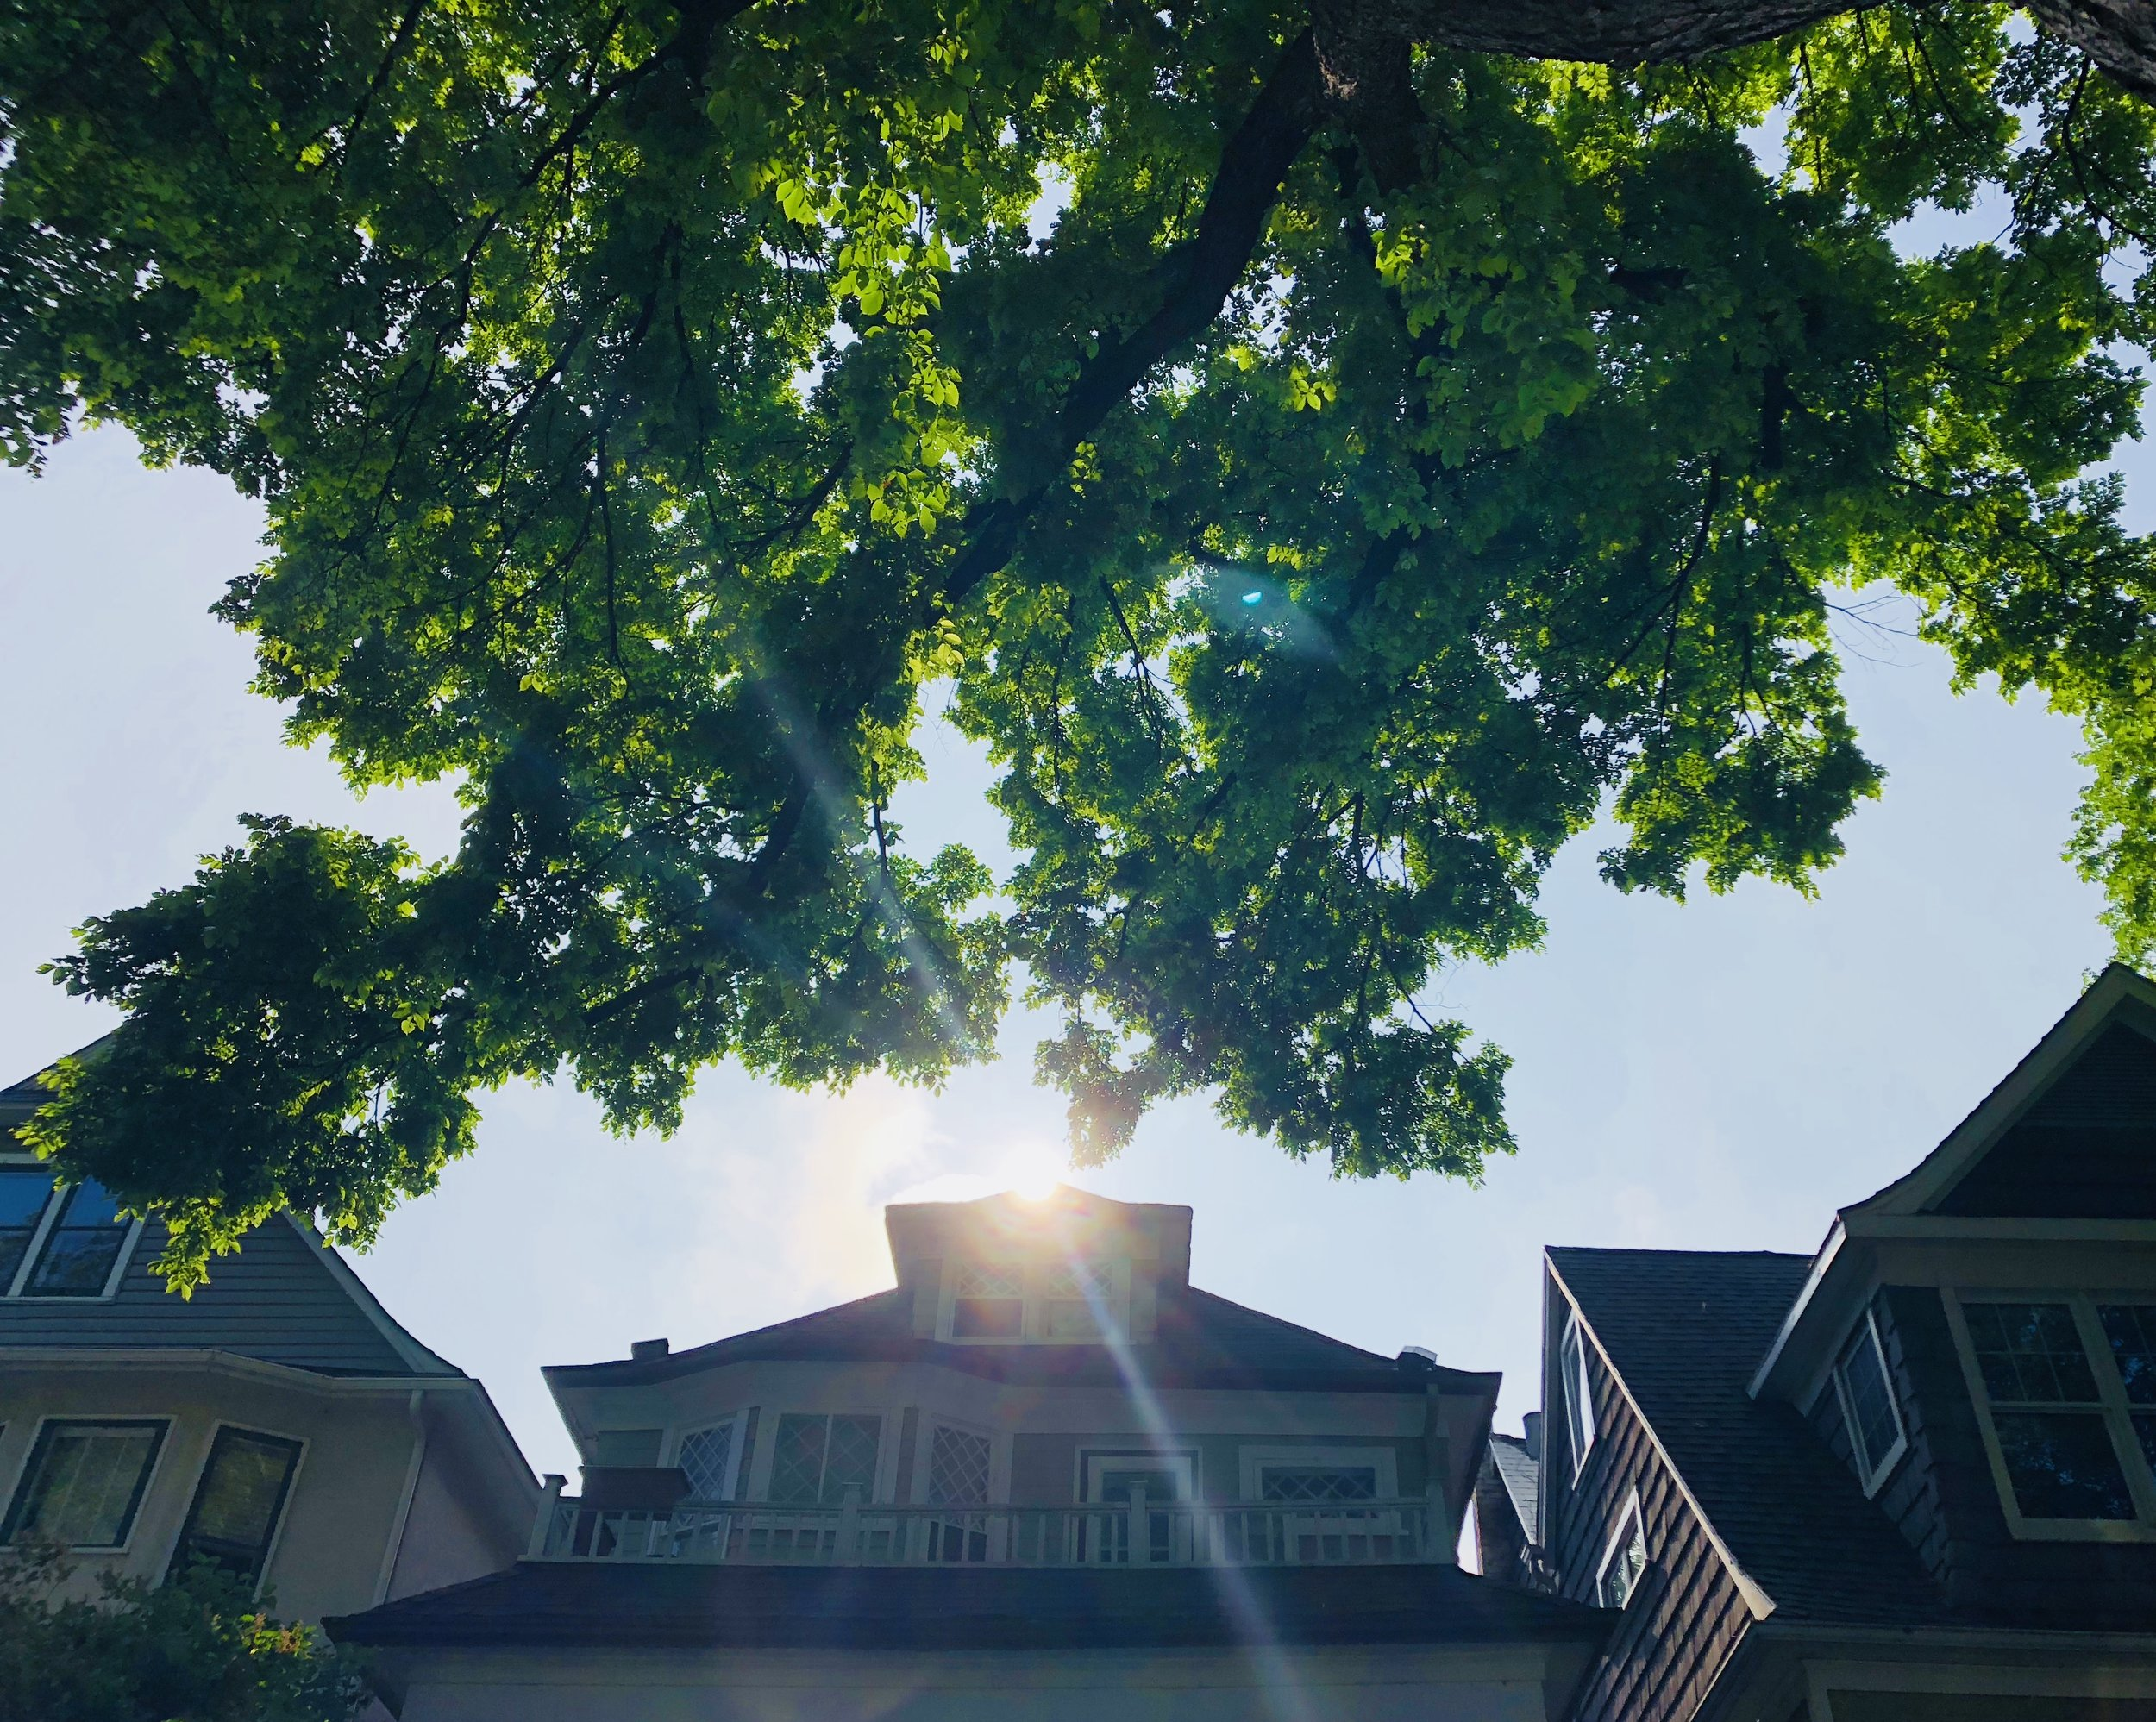 Creative non-Fiction - Treed: Walking in Canada's Urban Forests